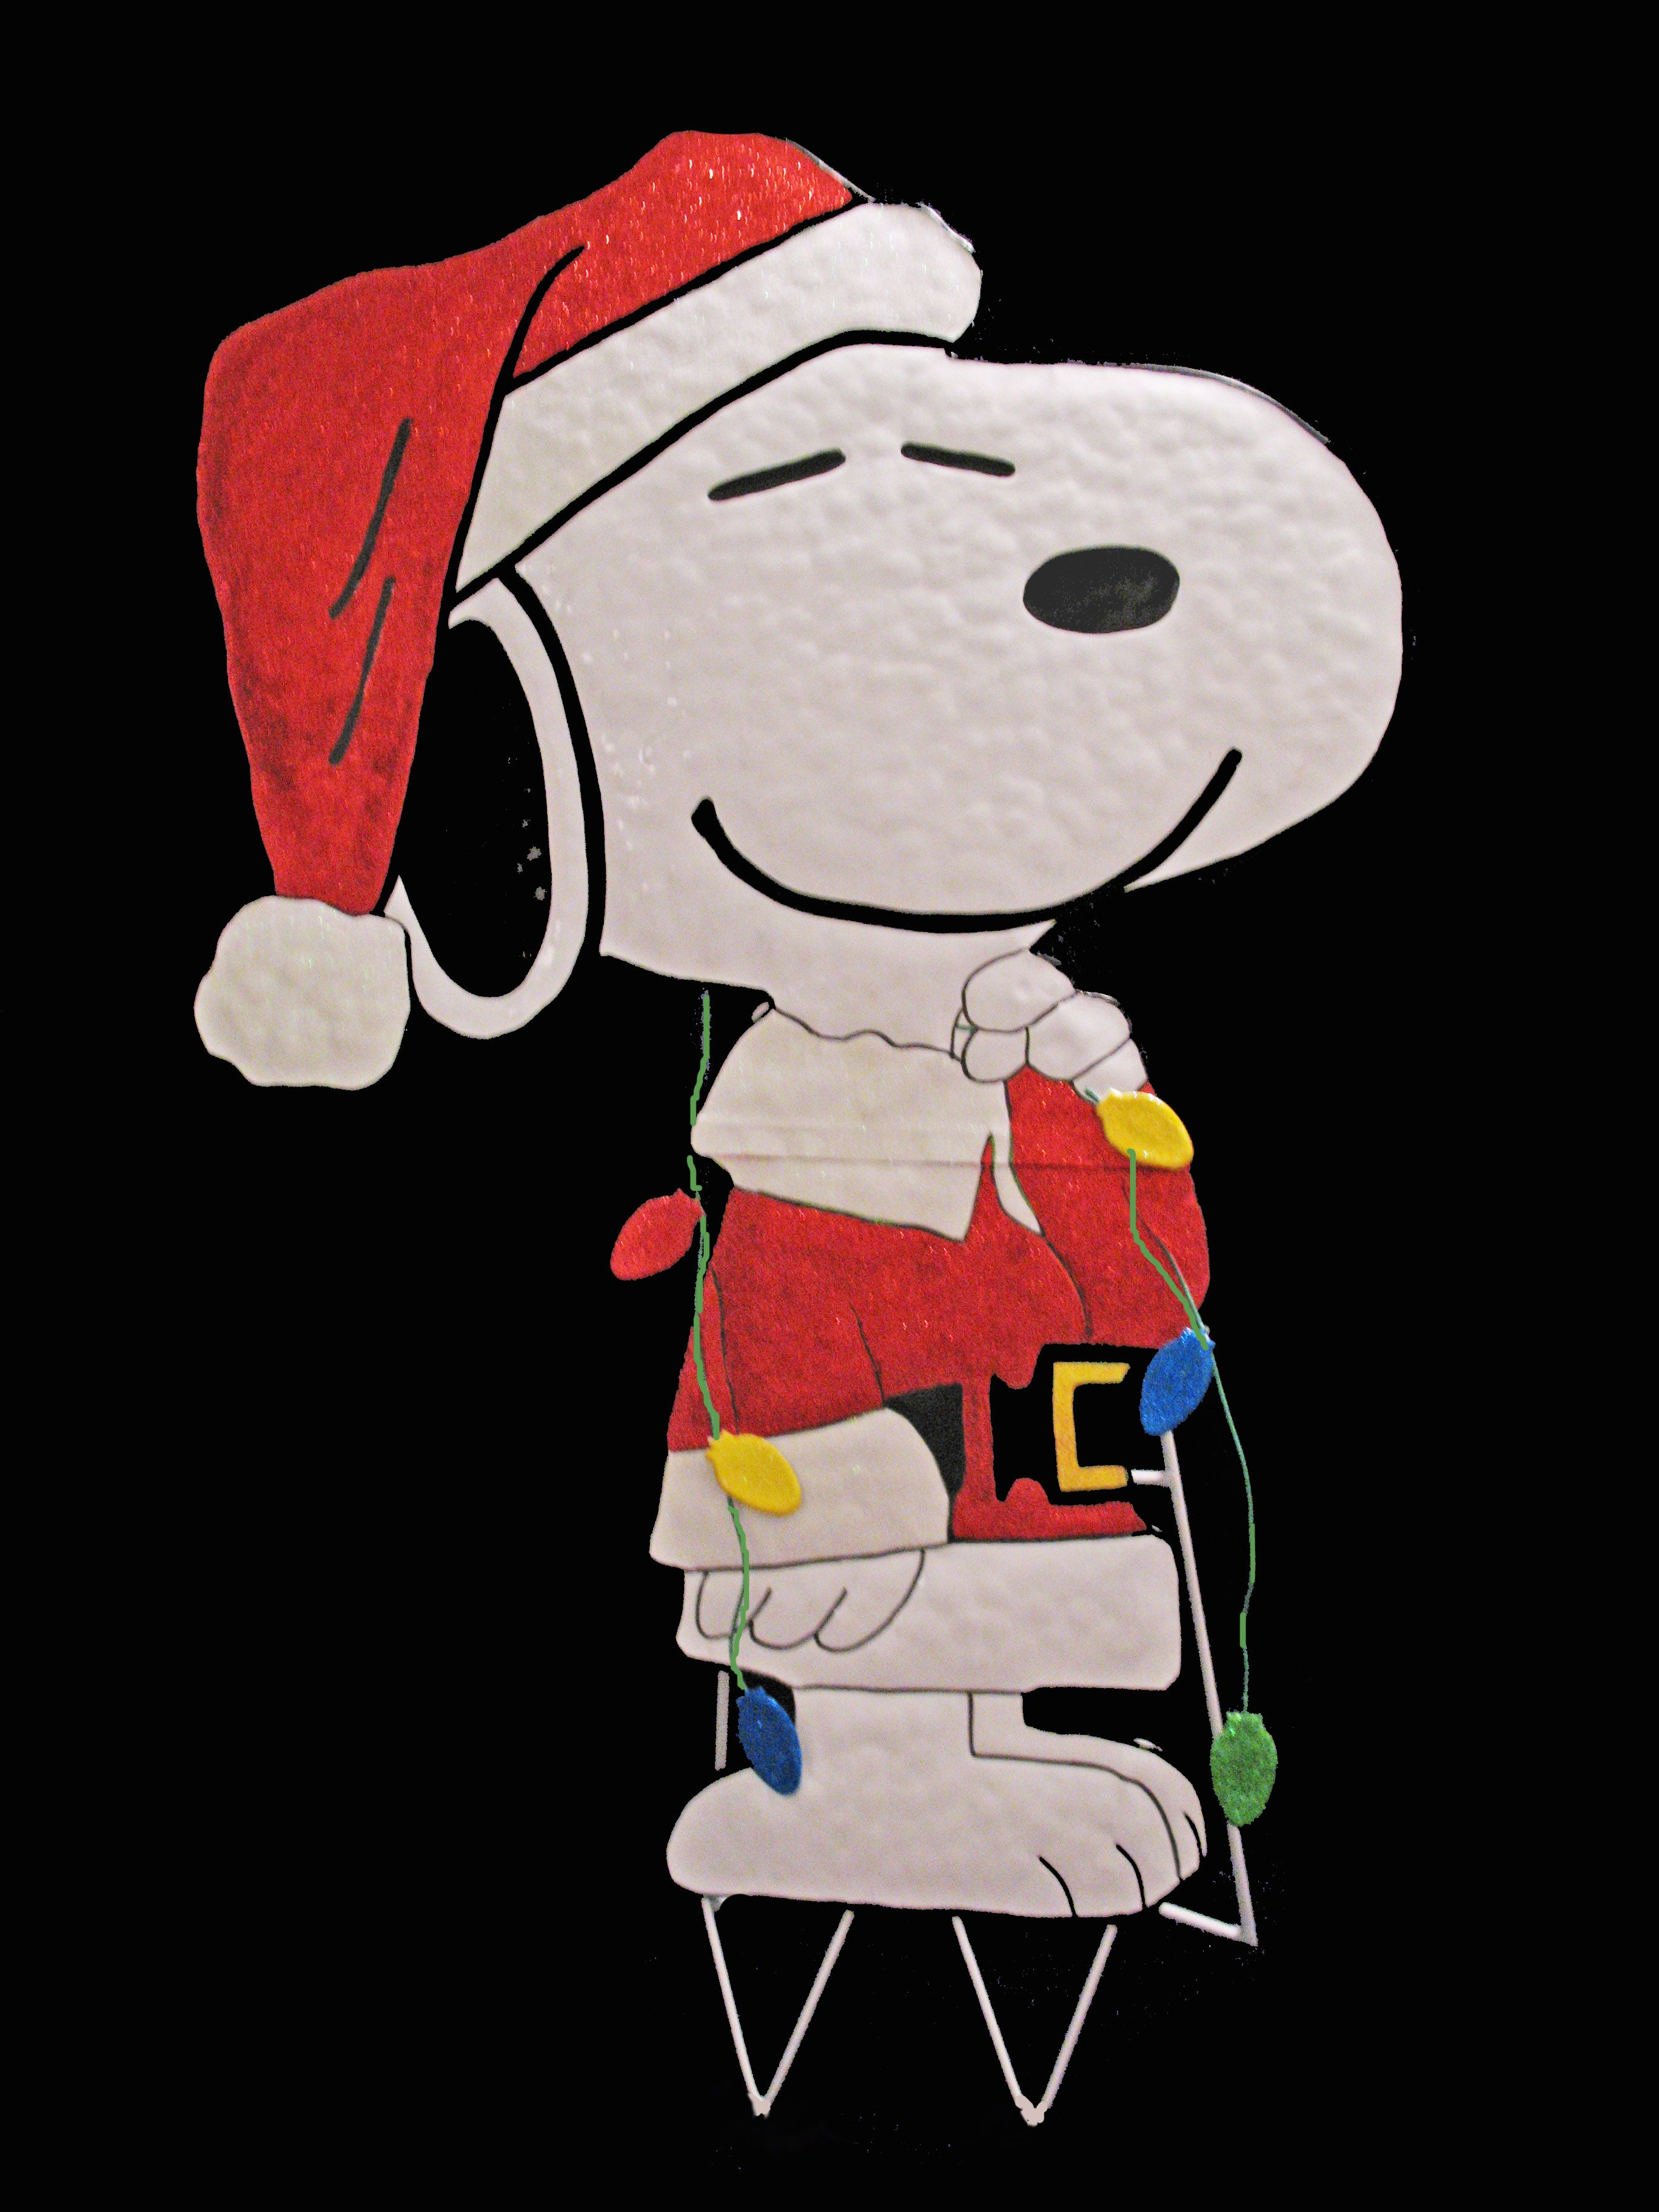 Snoopy outdoor christmas decorations - Peanuts Gang Hammered Metal Christmas Yard Art Snoopy Santa Christmas Yard Artoutdoor Christmas Decorationssnoopy